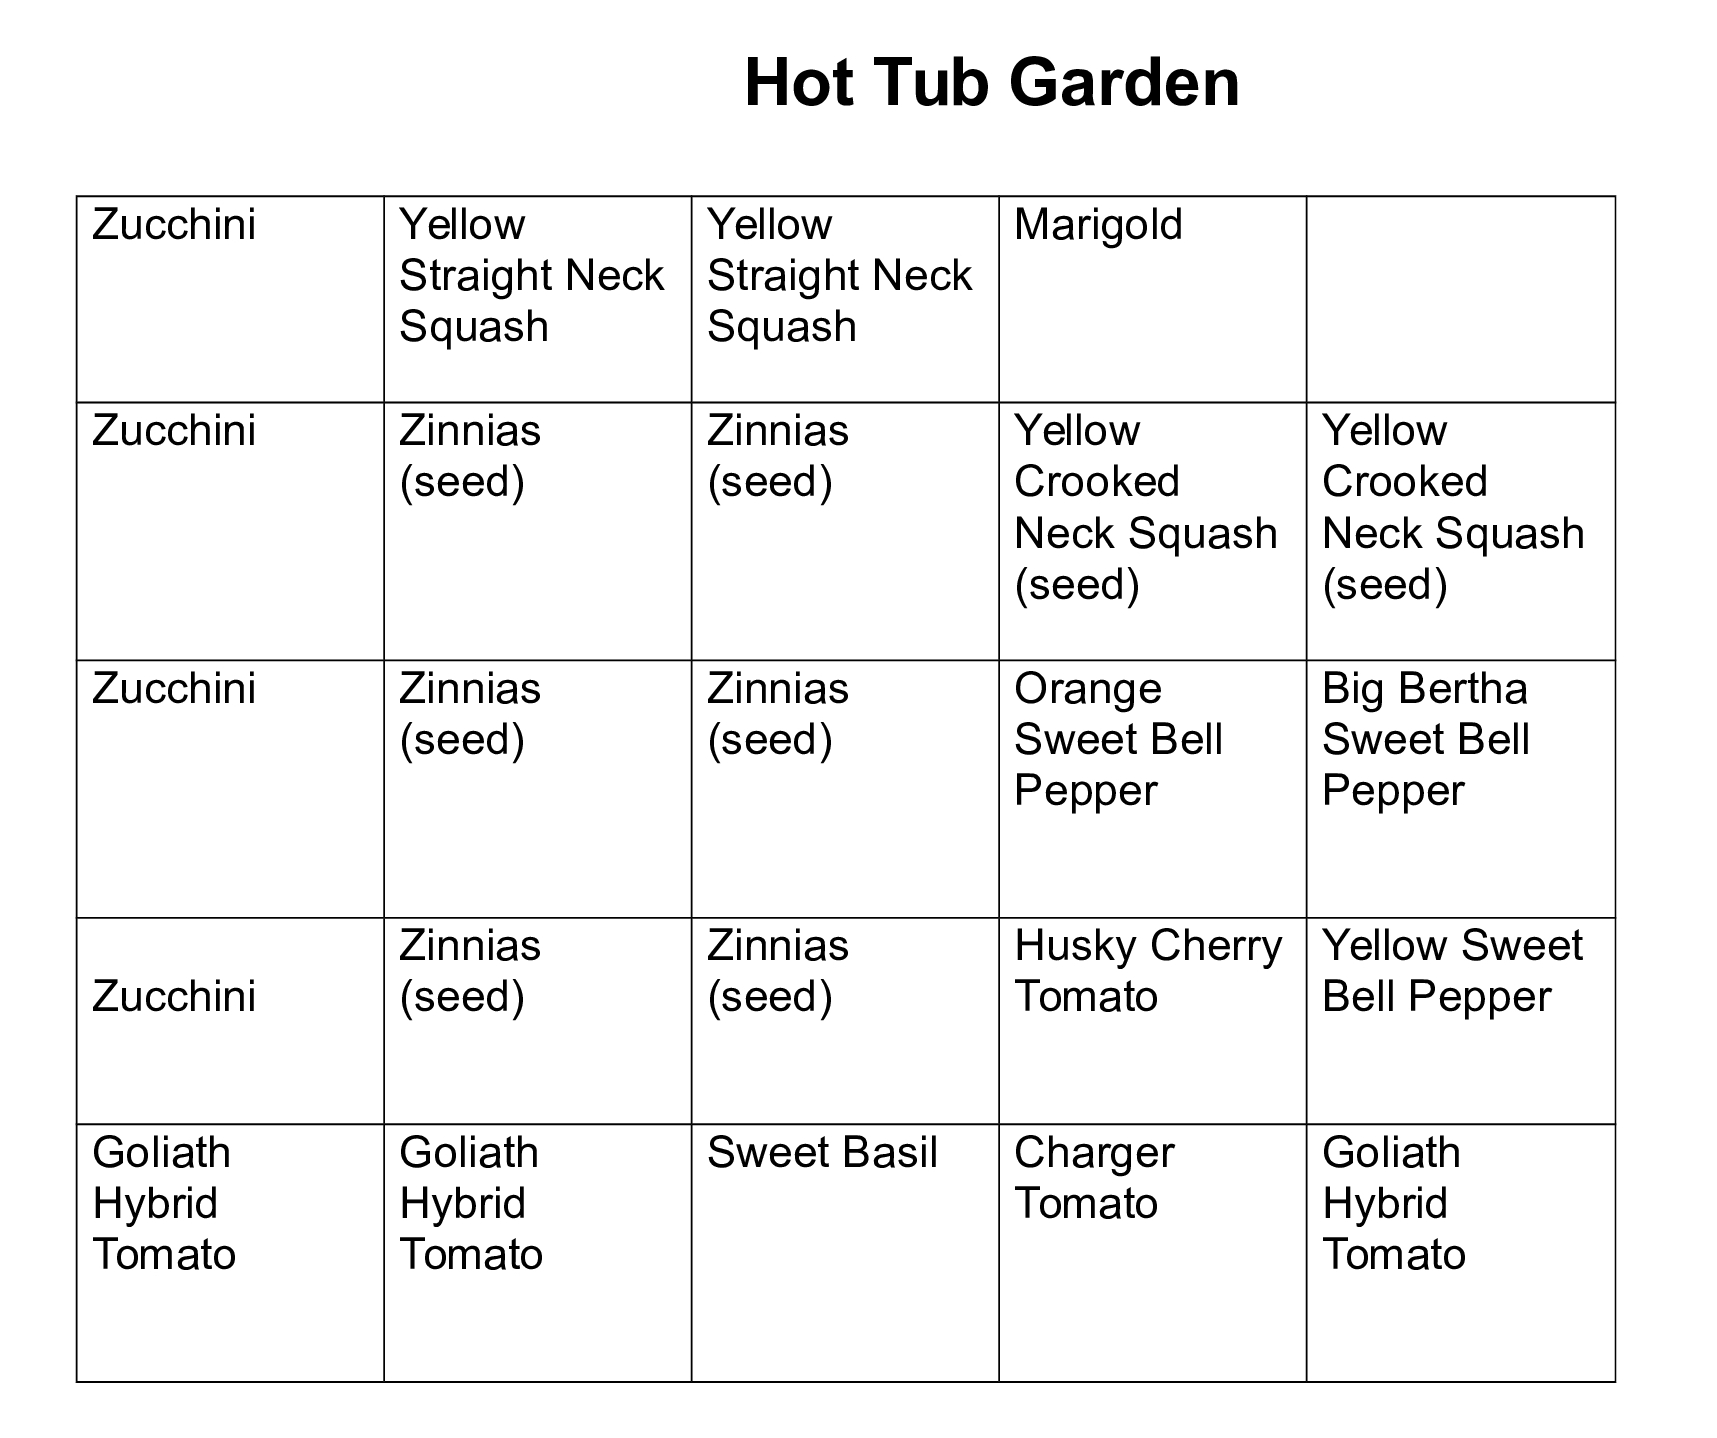 The Hot Tub Garden Layout A Place For Learning